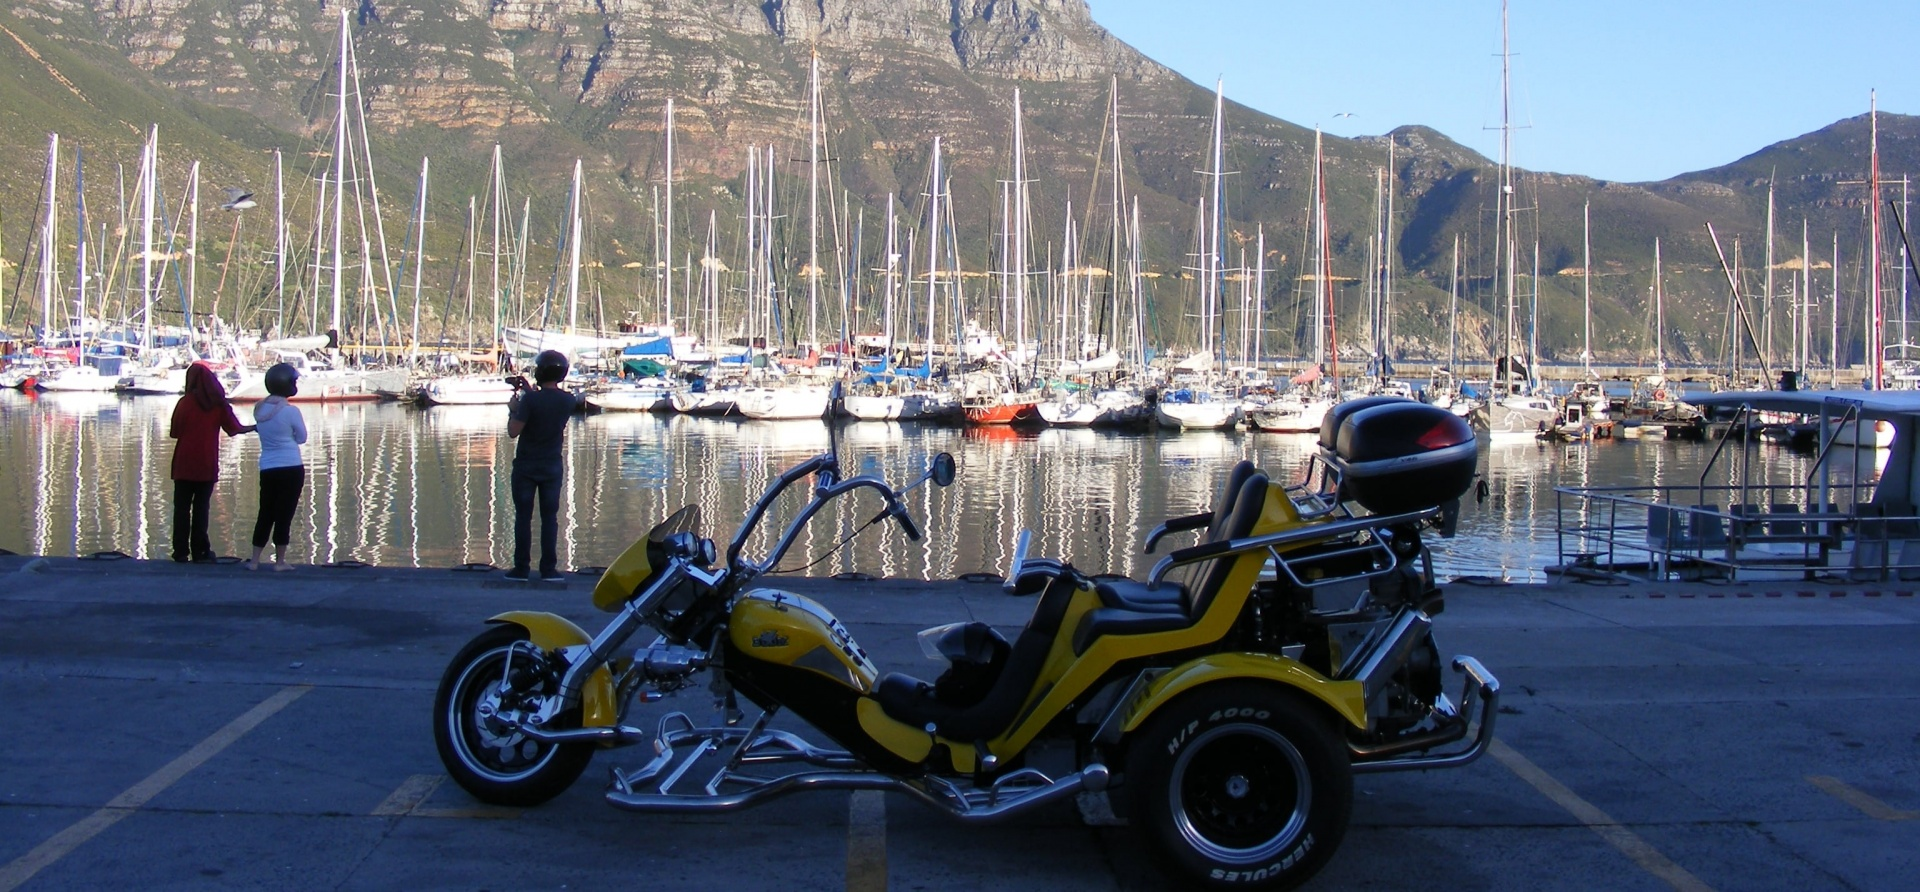 Chapmans Peak Sunset Trike Tour For Two-5